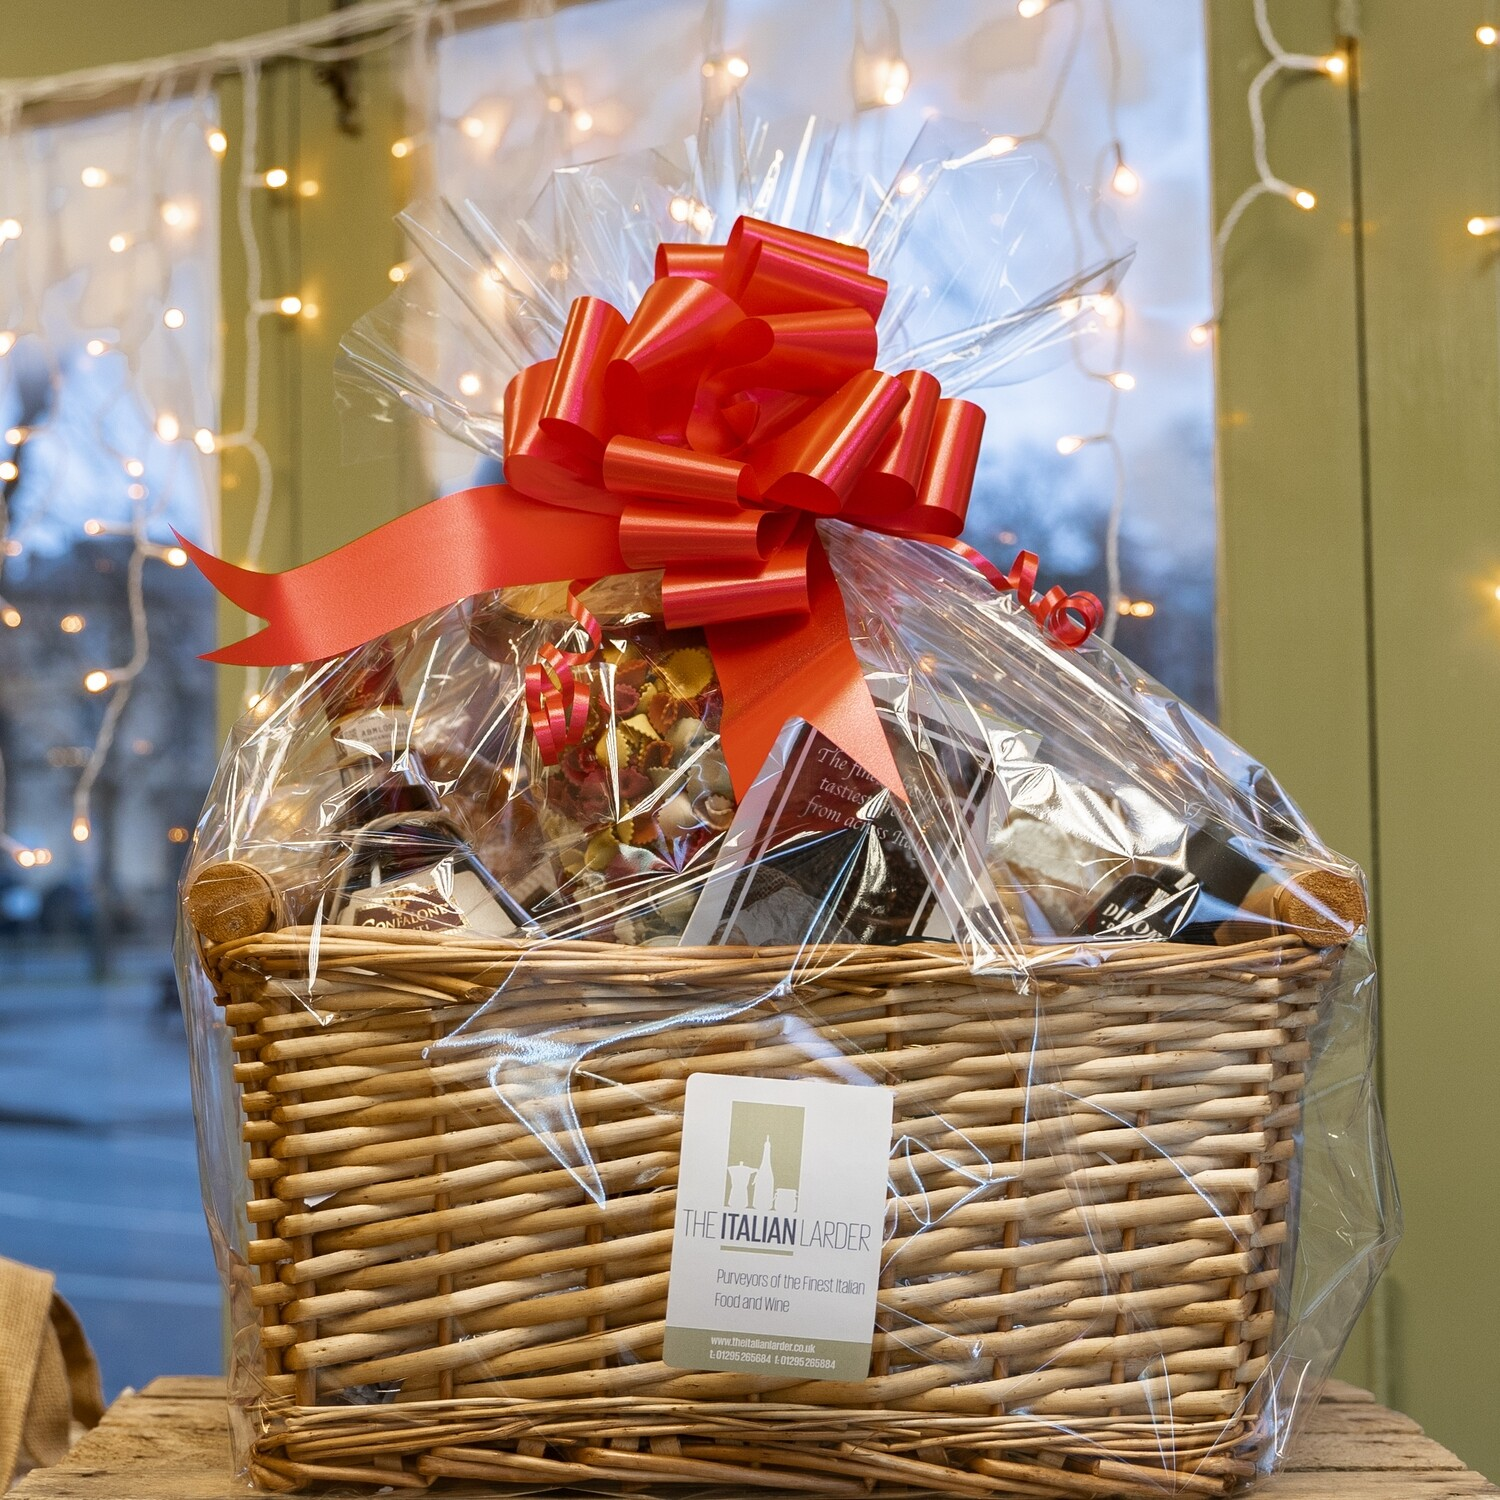 Large Gift Hamper Full of Italian Gifts #5